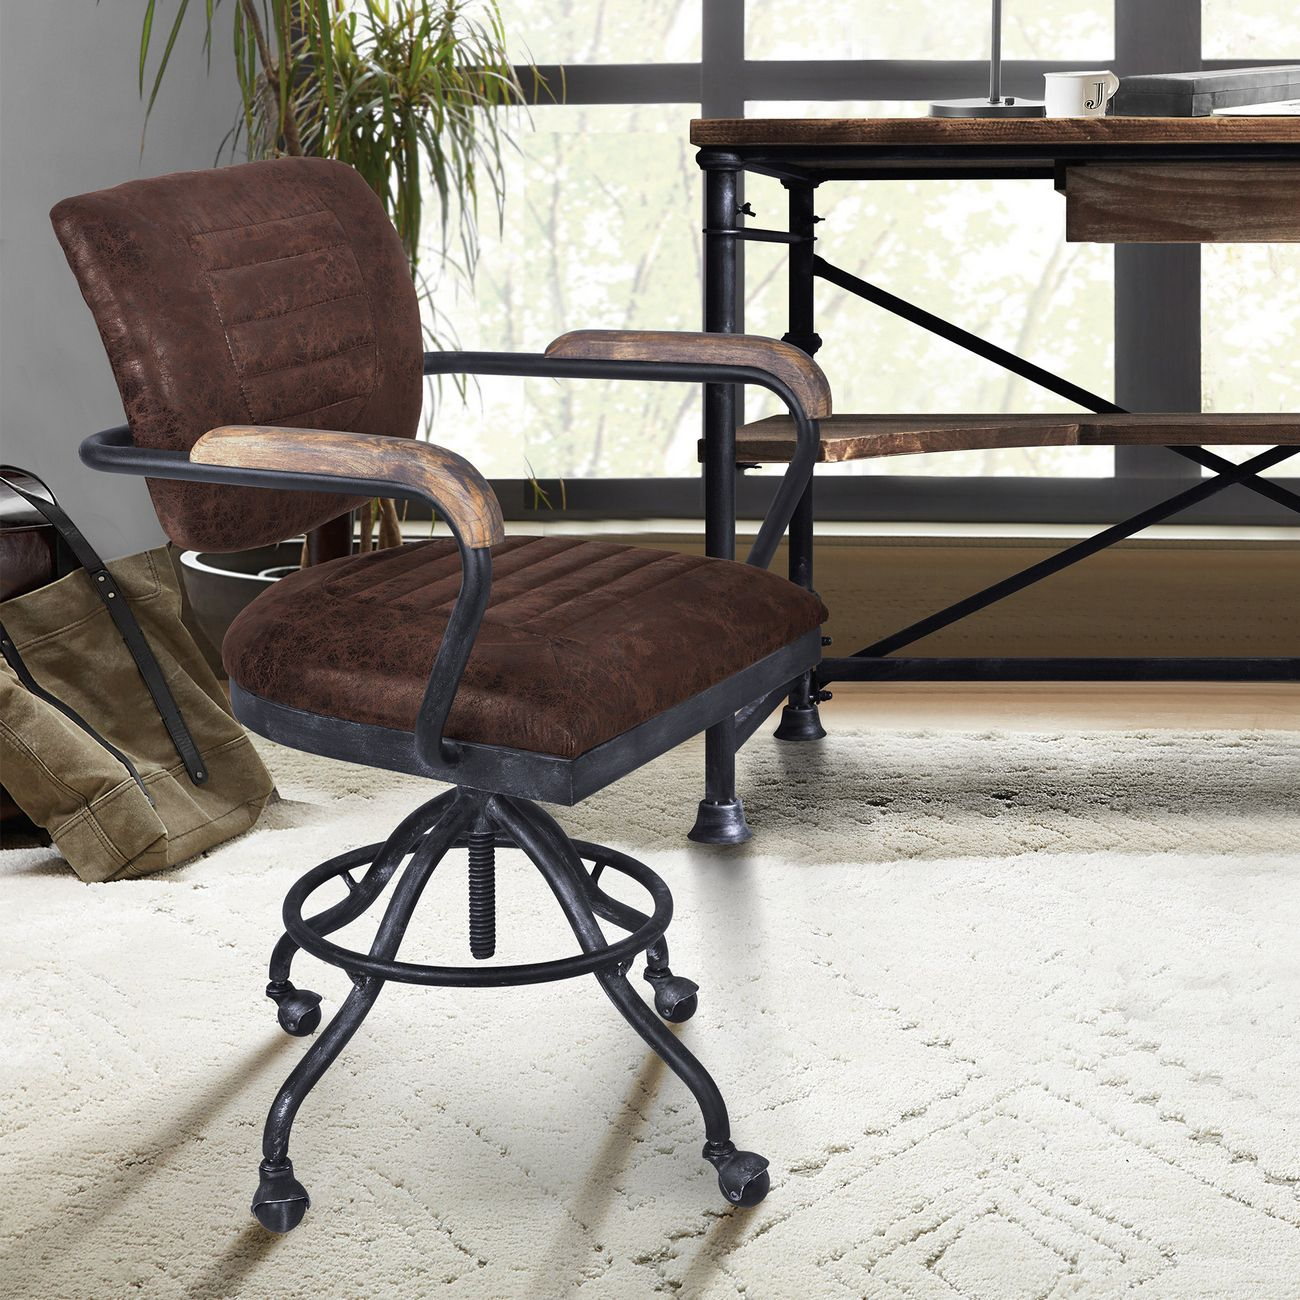 Brice Modern Office Chair In Industrial Grey Finish Brown Fabric W Pine Wood Arms Armen Living Lcbiofsbbr